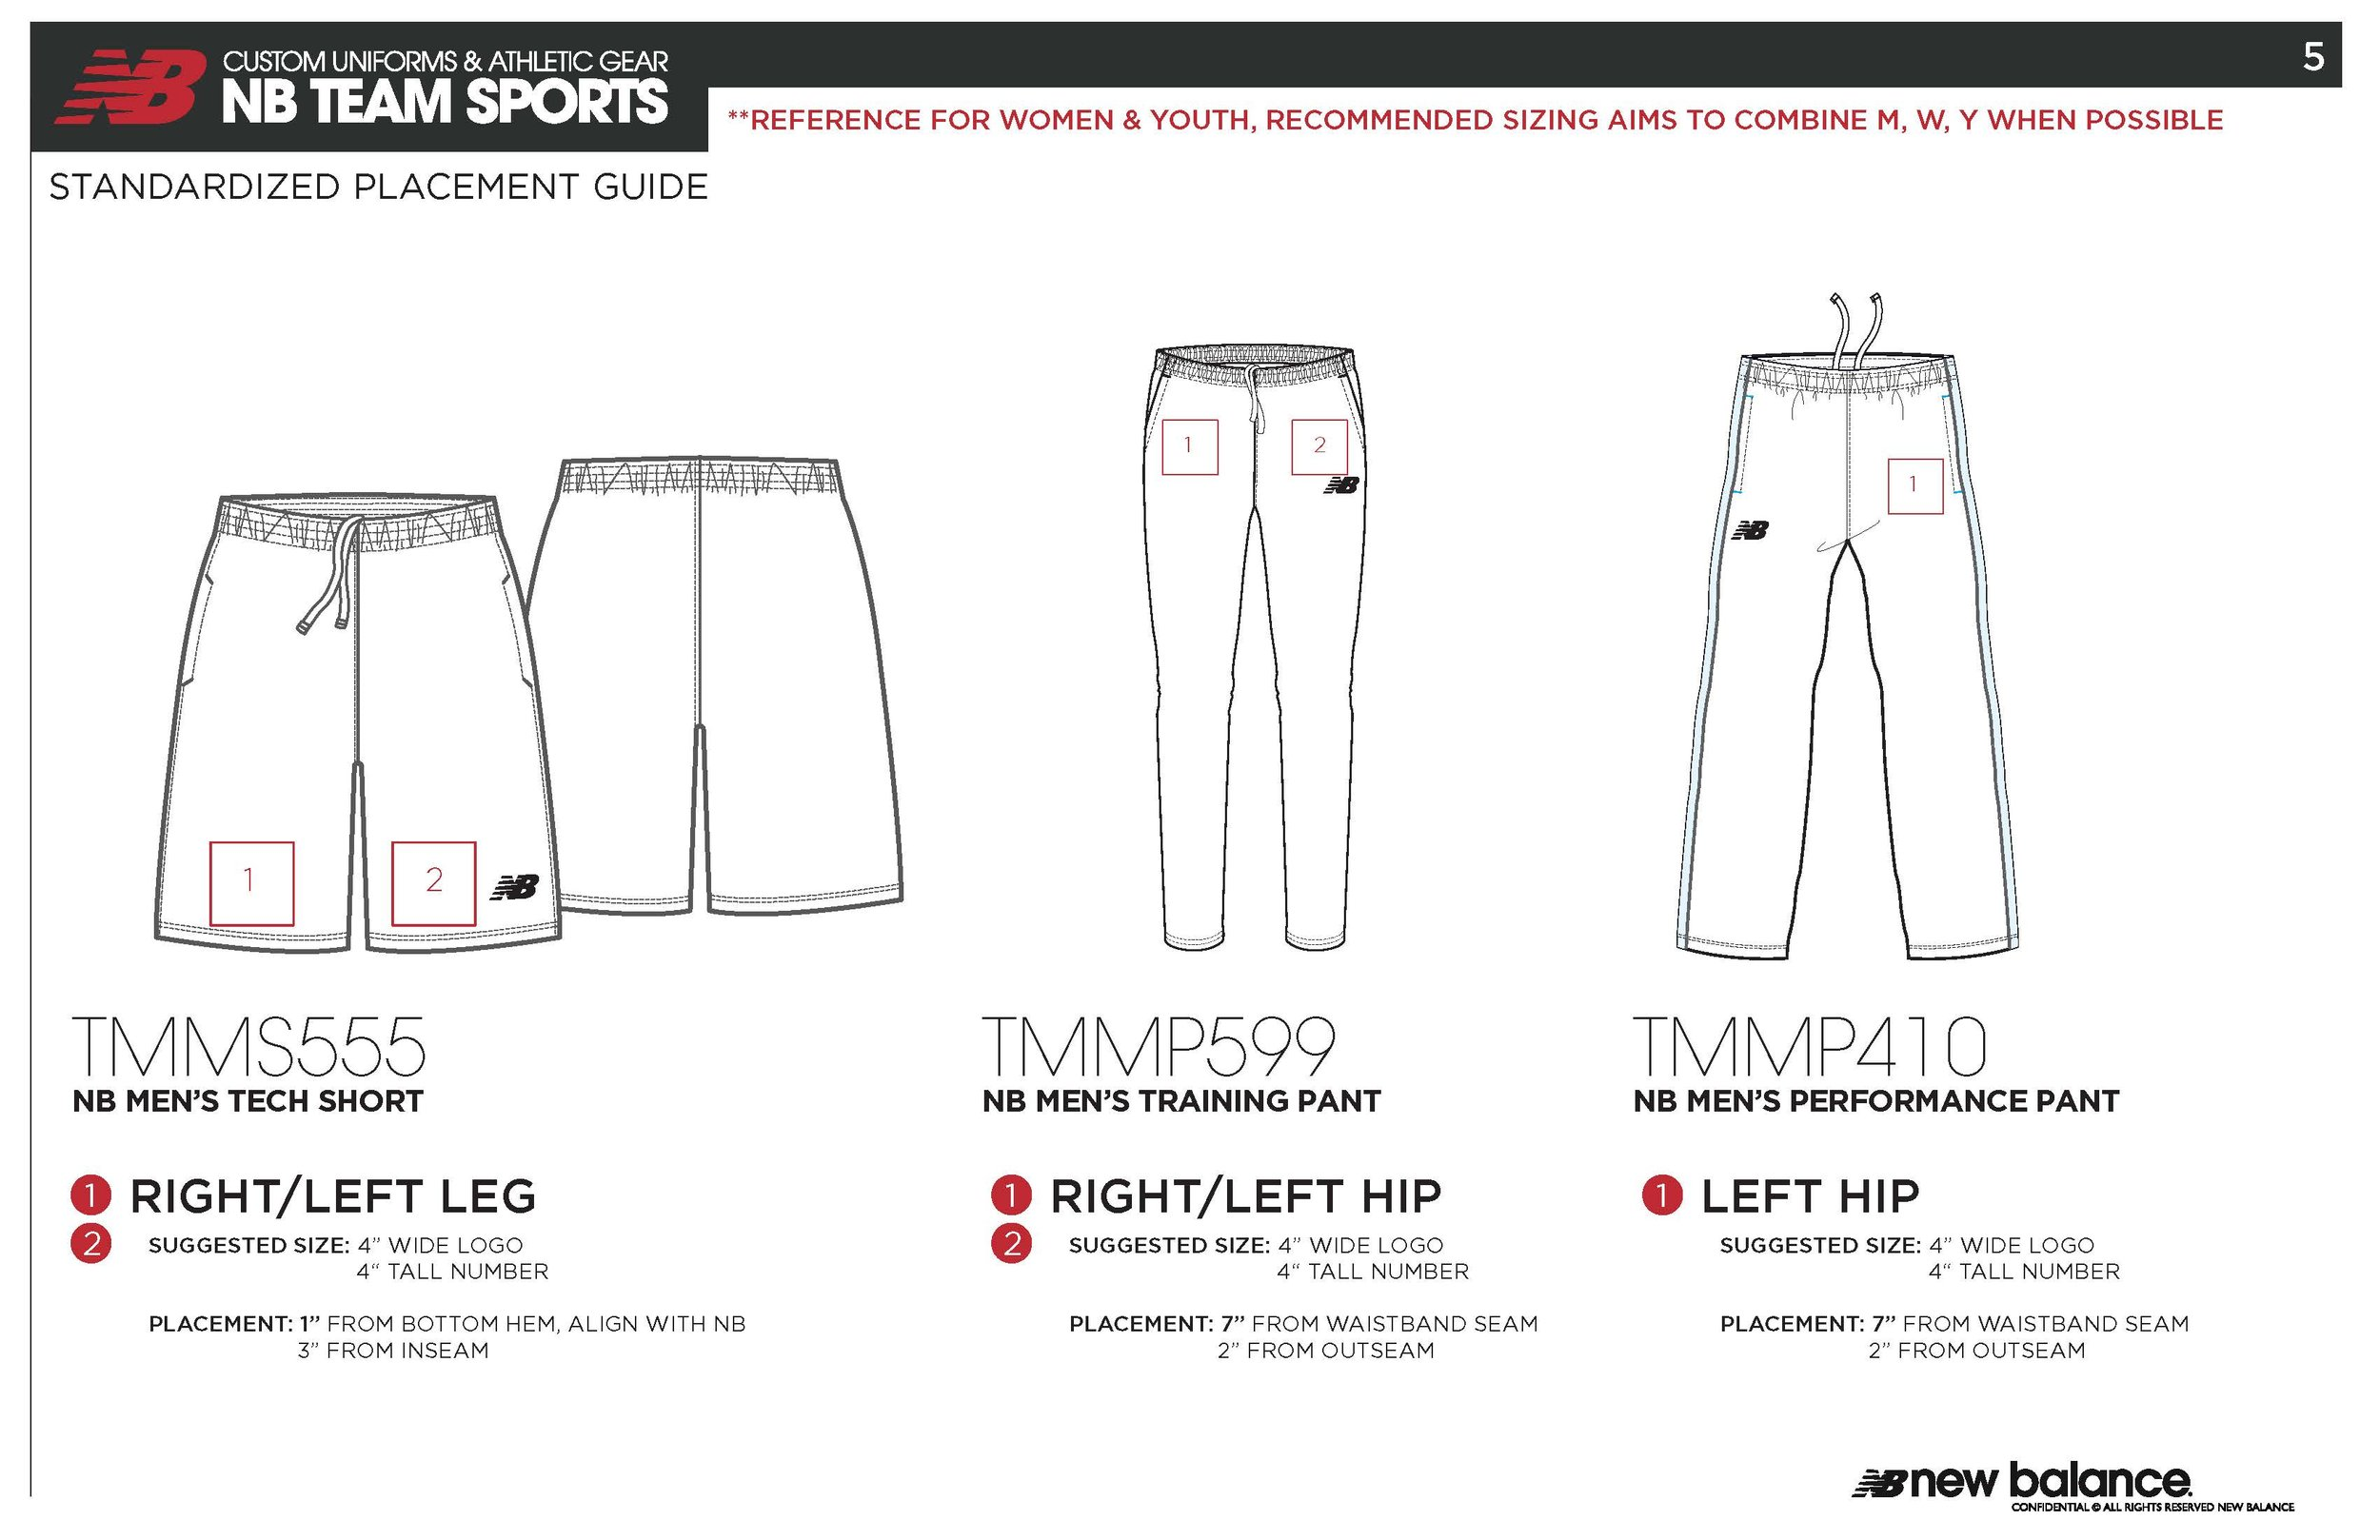 TEAMWEAR_Standardized Placement Guide Final_Page_5.jpg